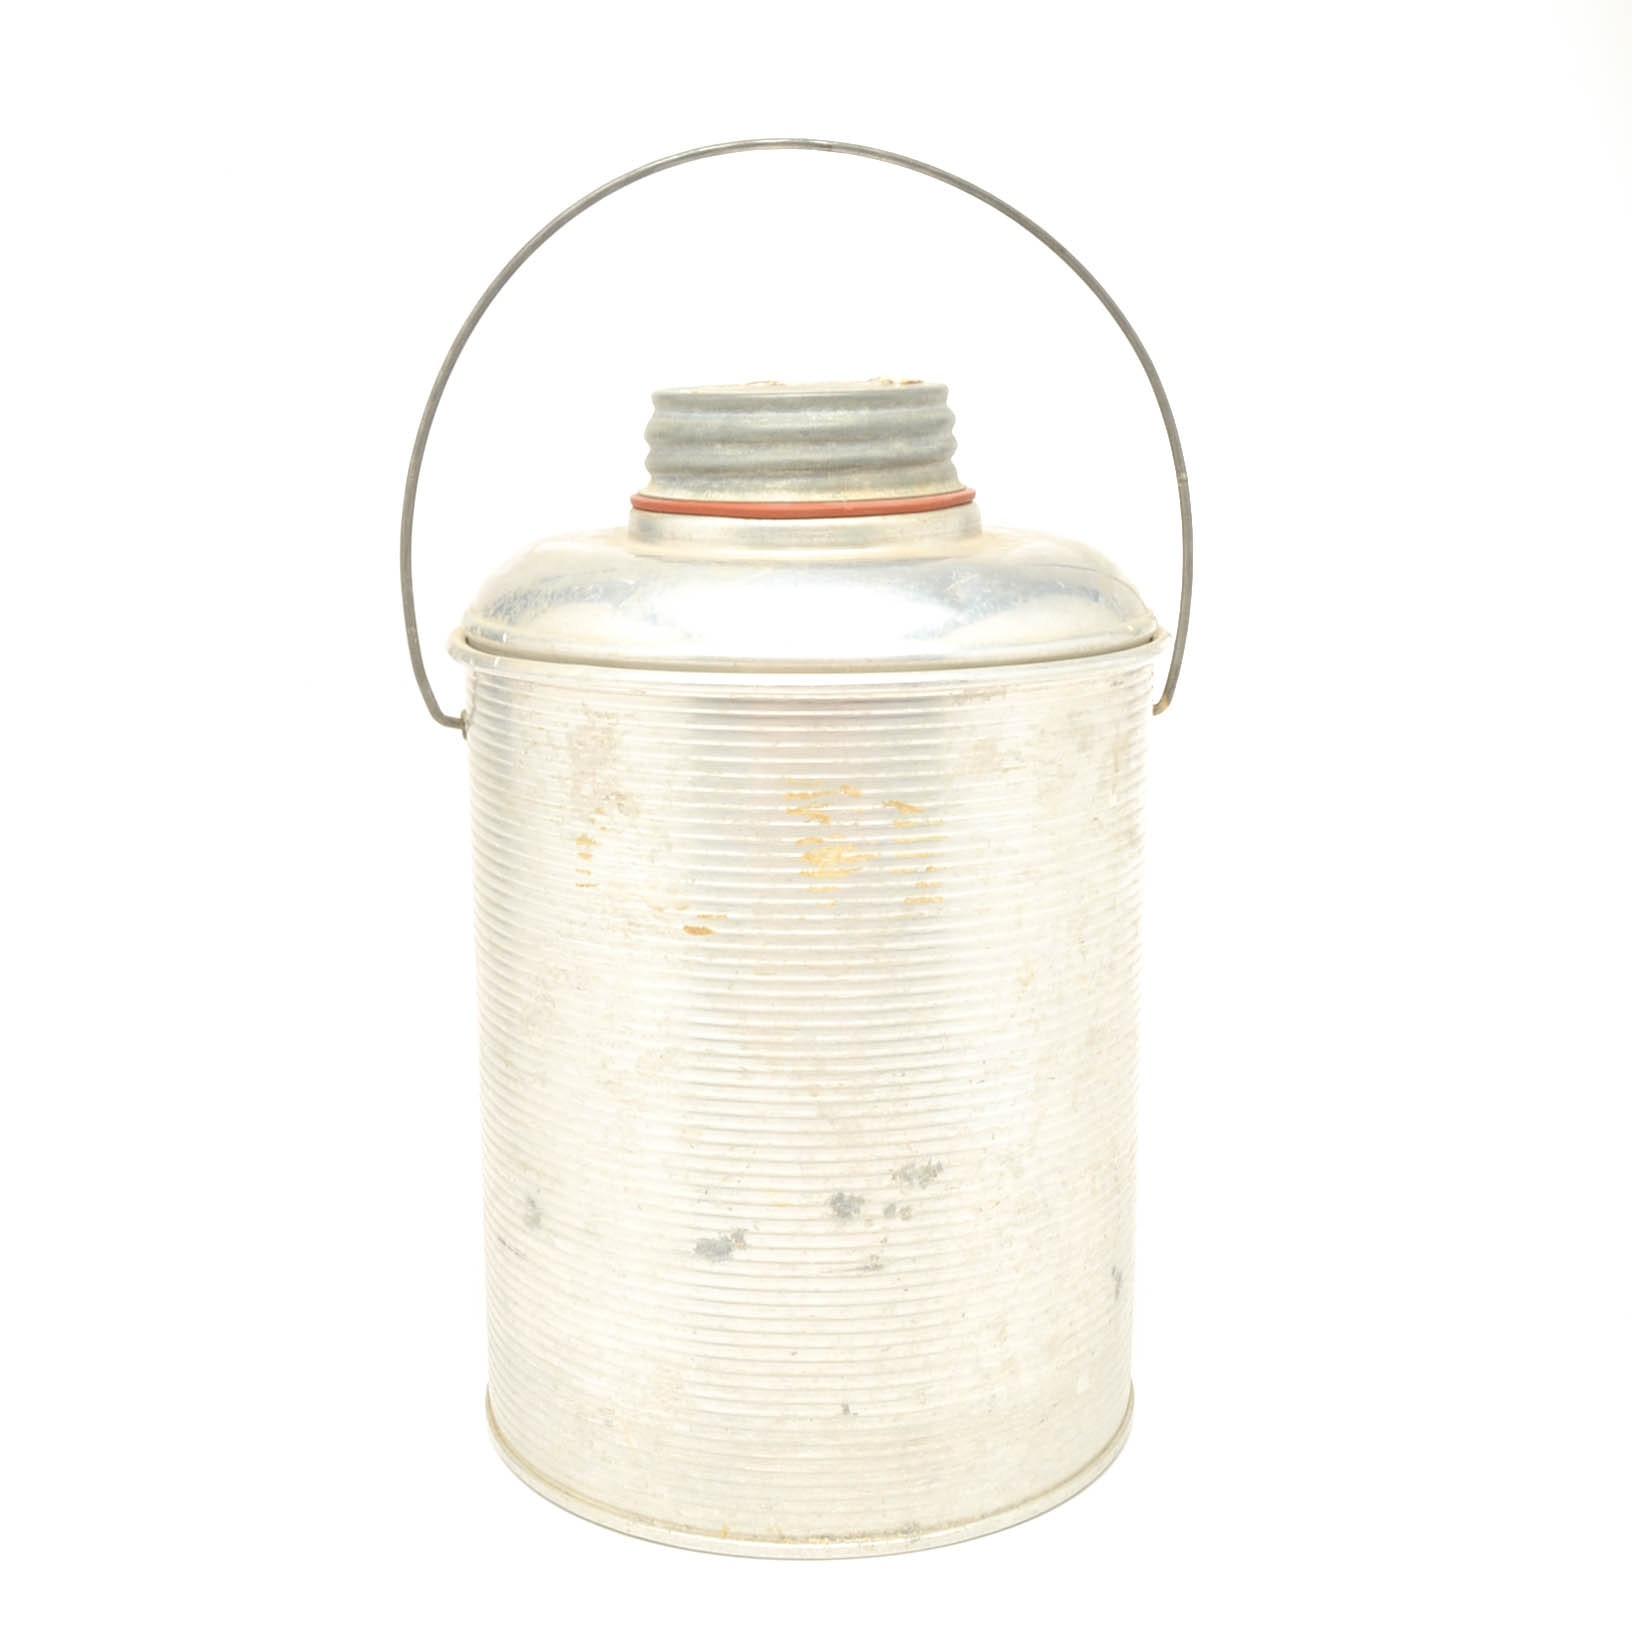 Vintage Ball Insulated Aluminum Thermos